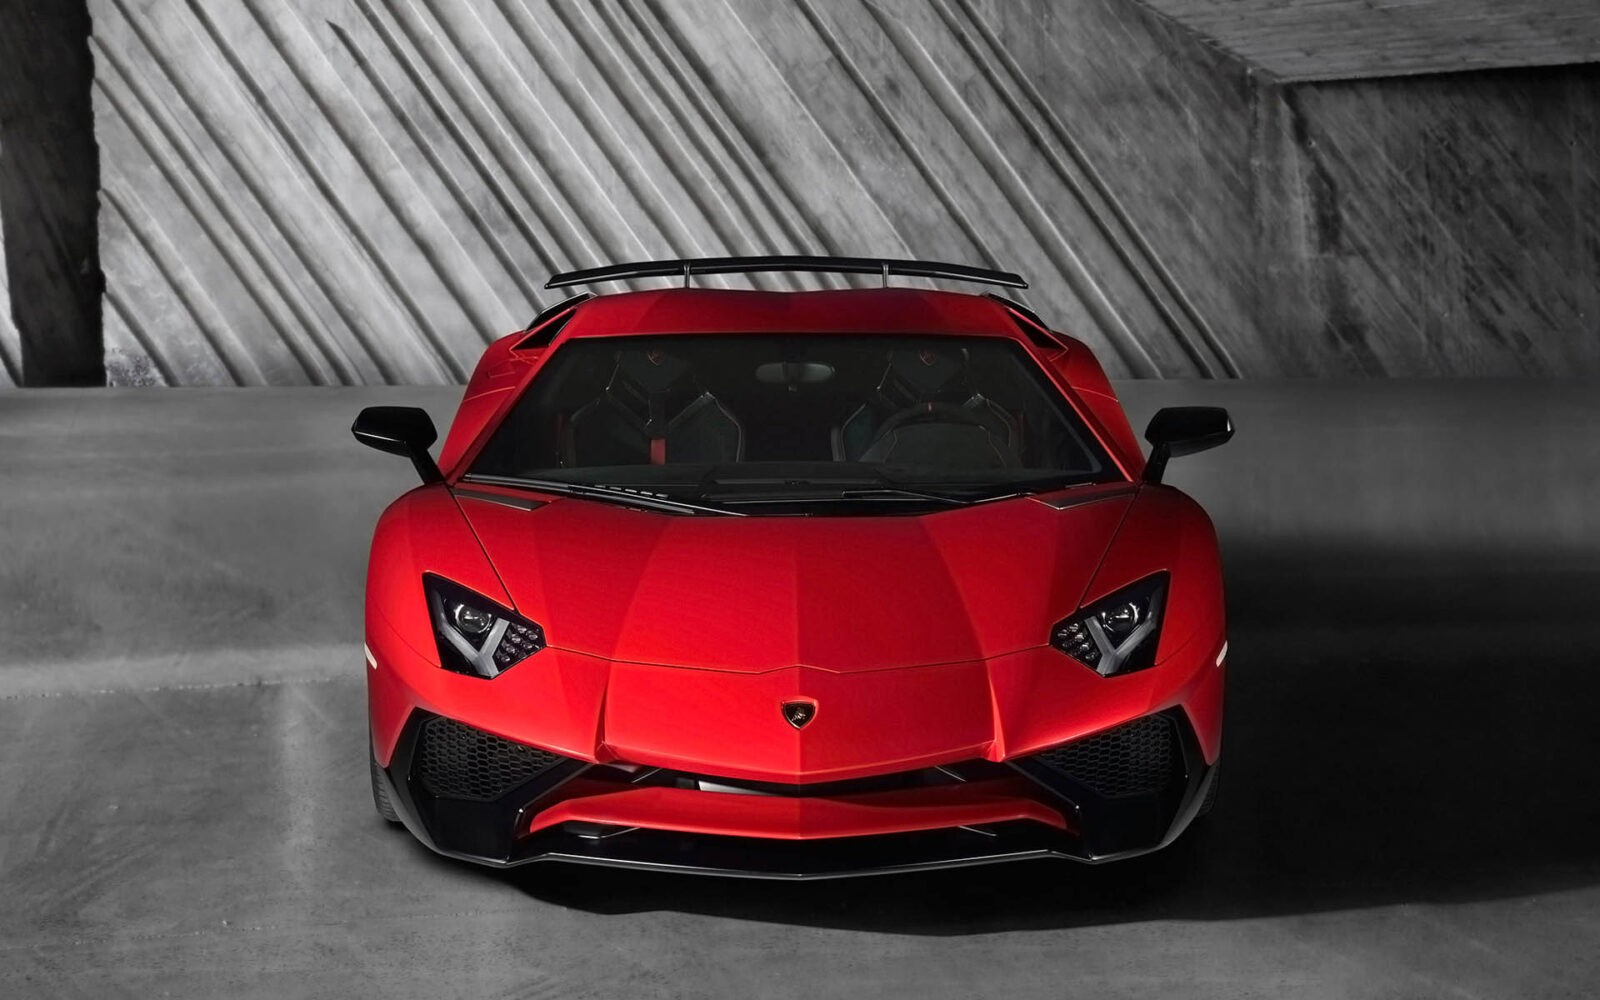 Lamborghini Aventador HD wallpaper